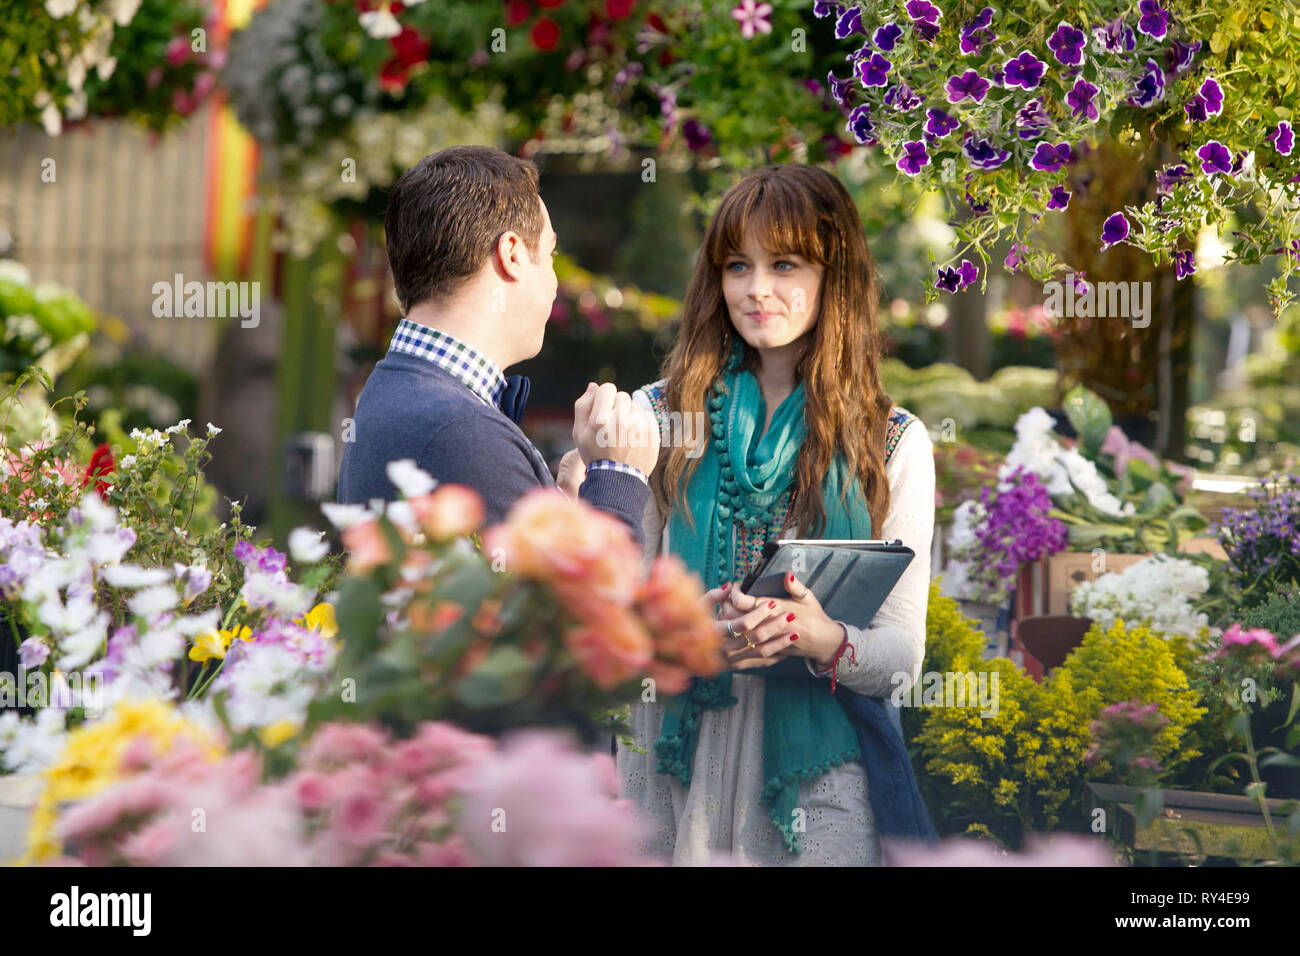 ALEXIS BLEDEL, REMEMBER SUNDAY, 2013 - Stock Image